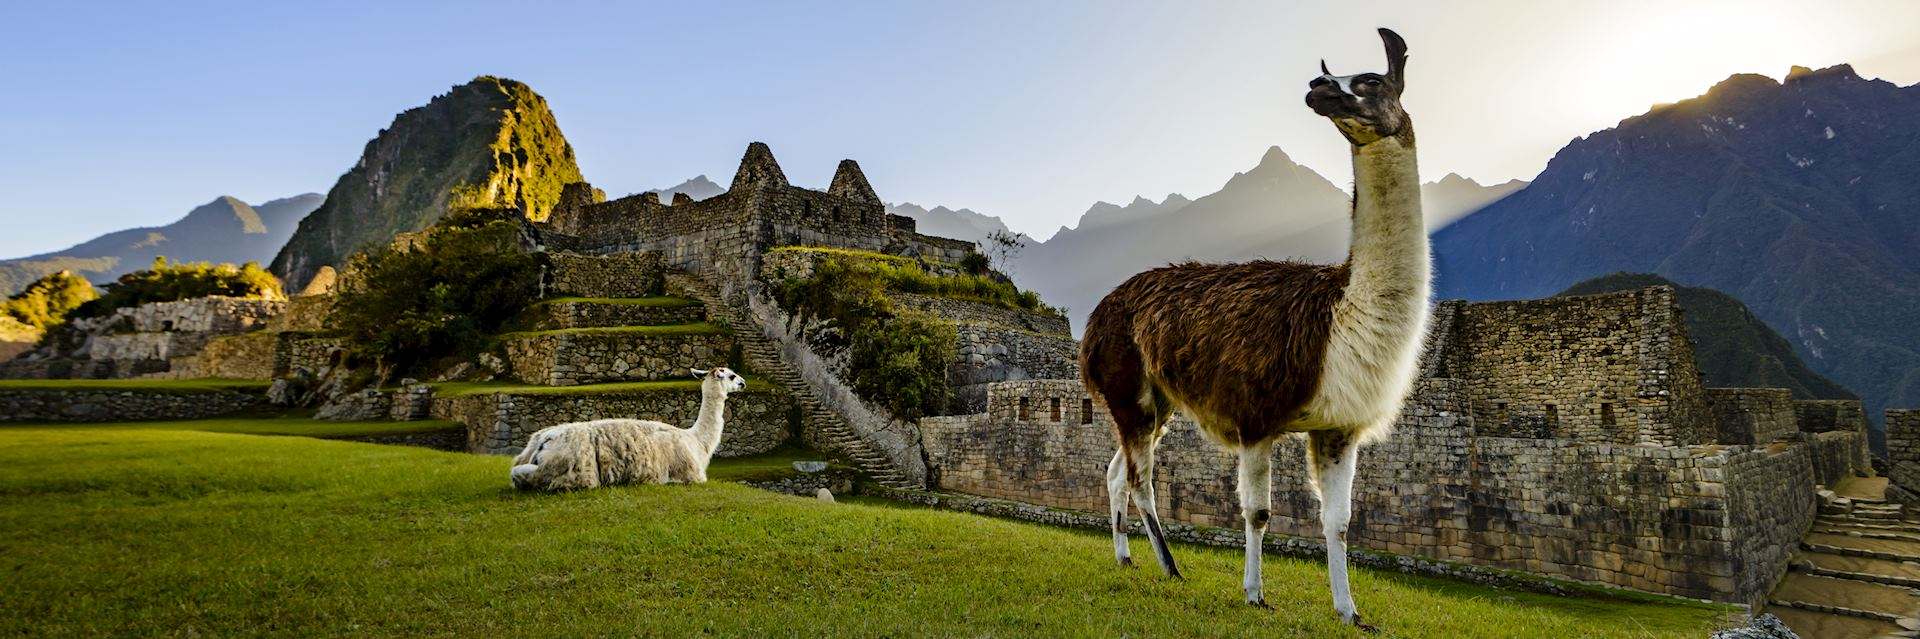 Win a 10-day Audley trip to Peru